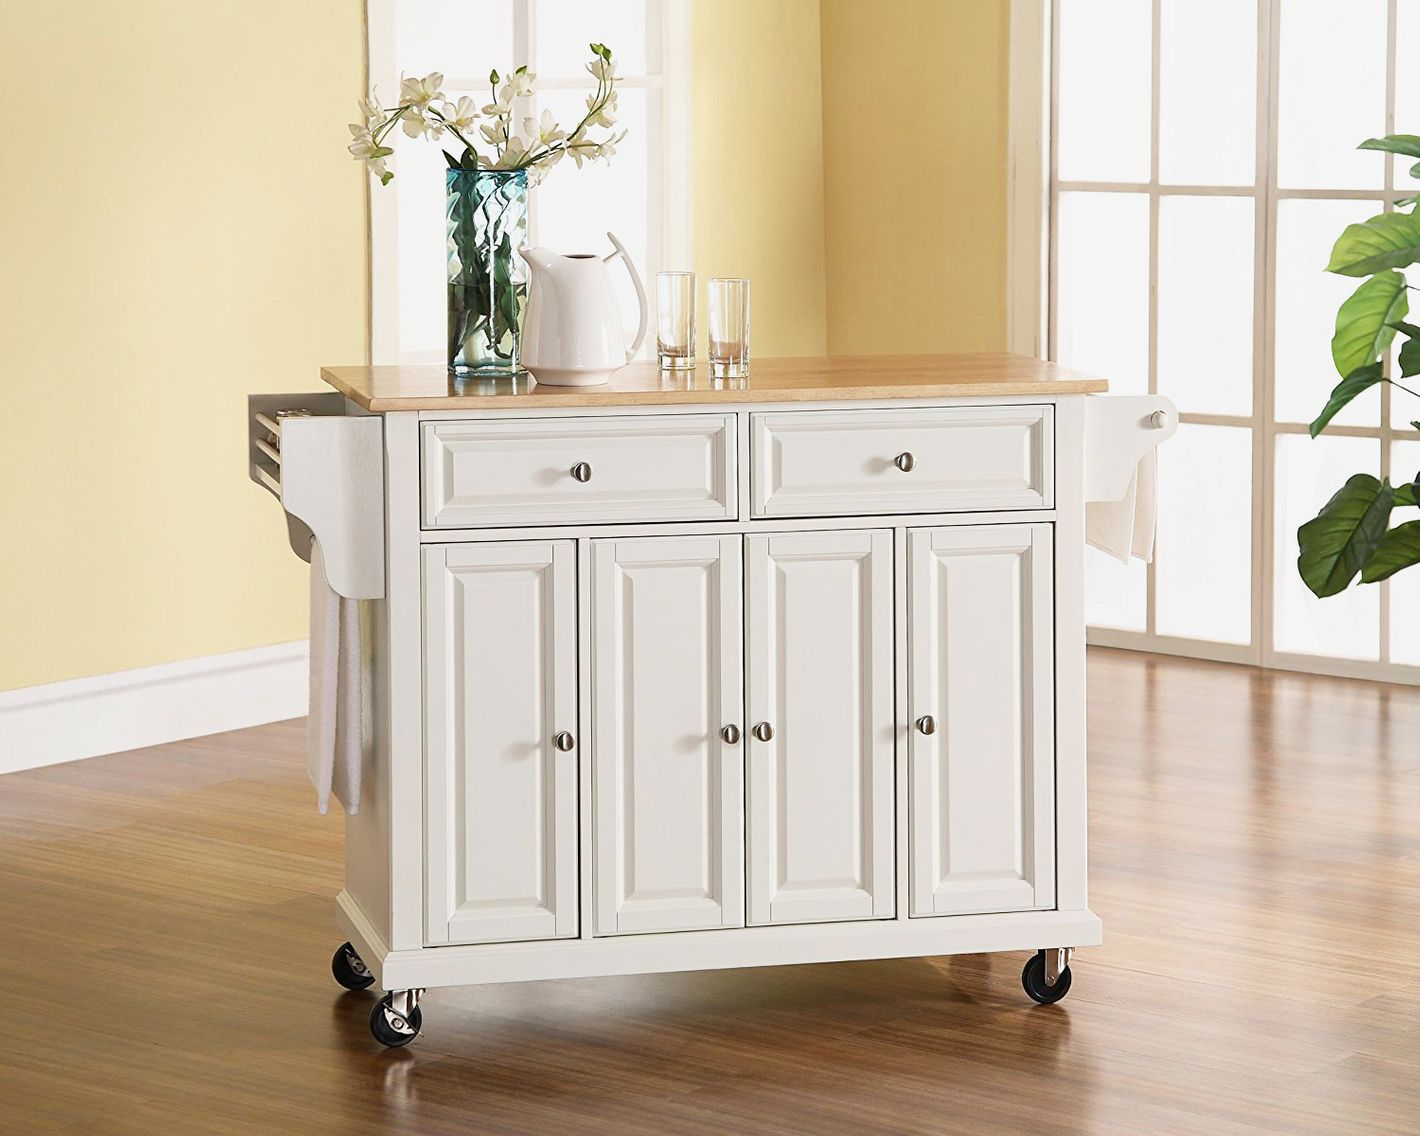 The 14 Best Butcher-Block Kitchen Islands and Carts ? 2018